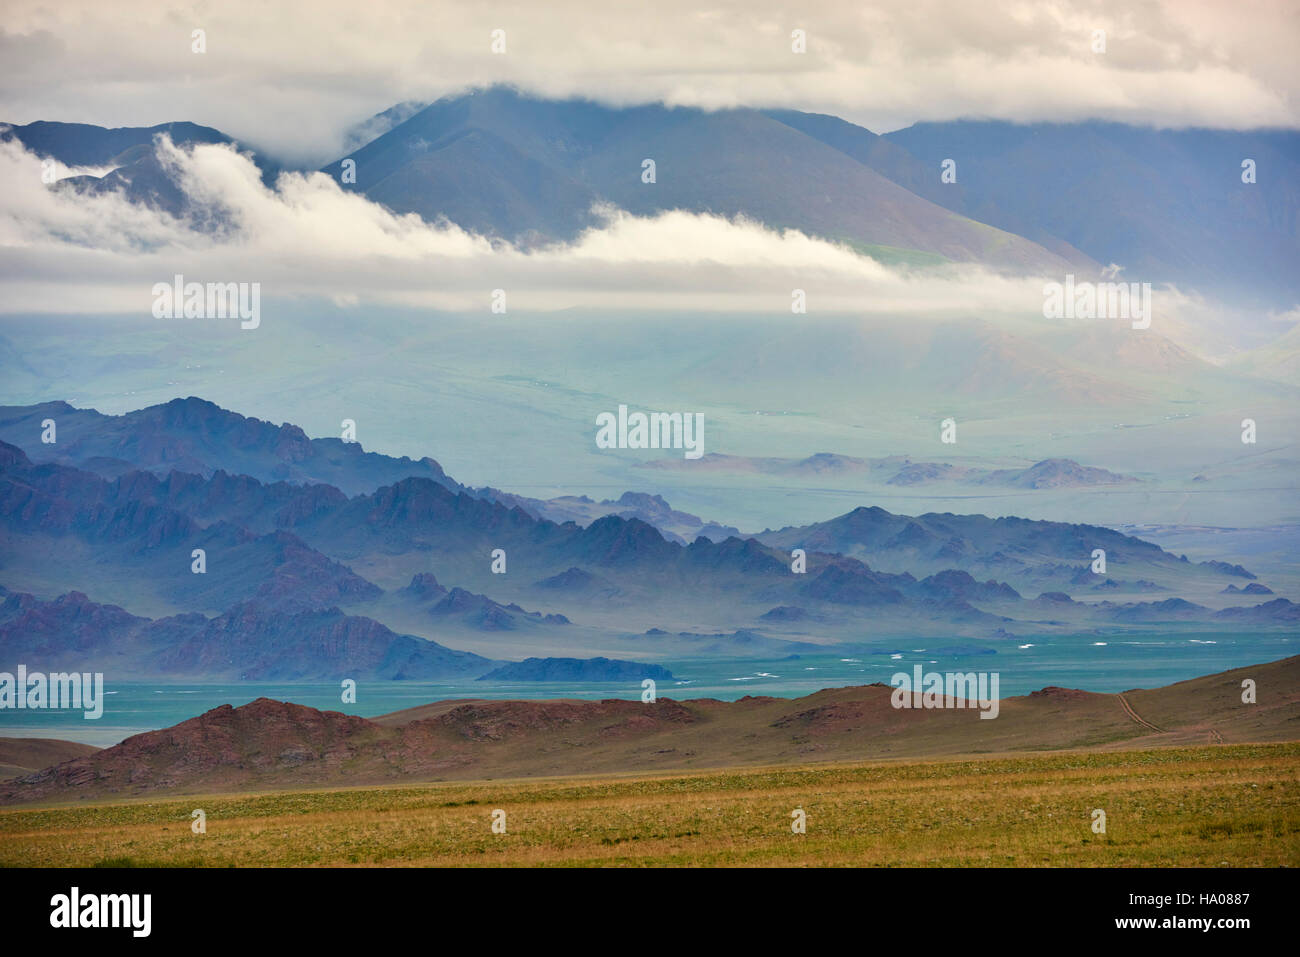 Mongolia, Bayan-Ulgii province, western Mongolia, the colored mountains of the Altay Stock Photo